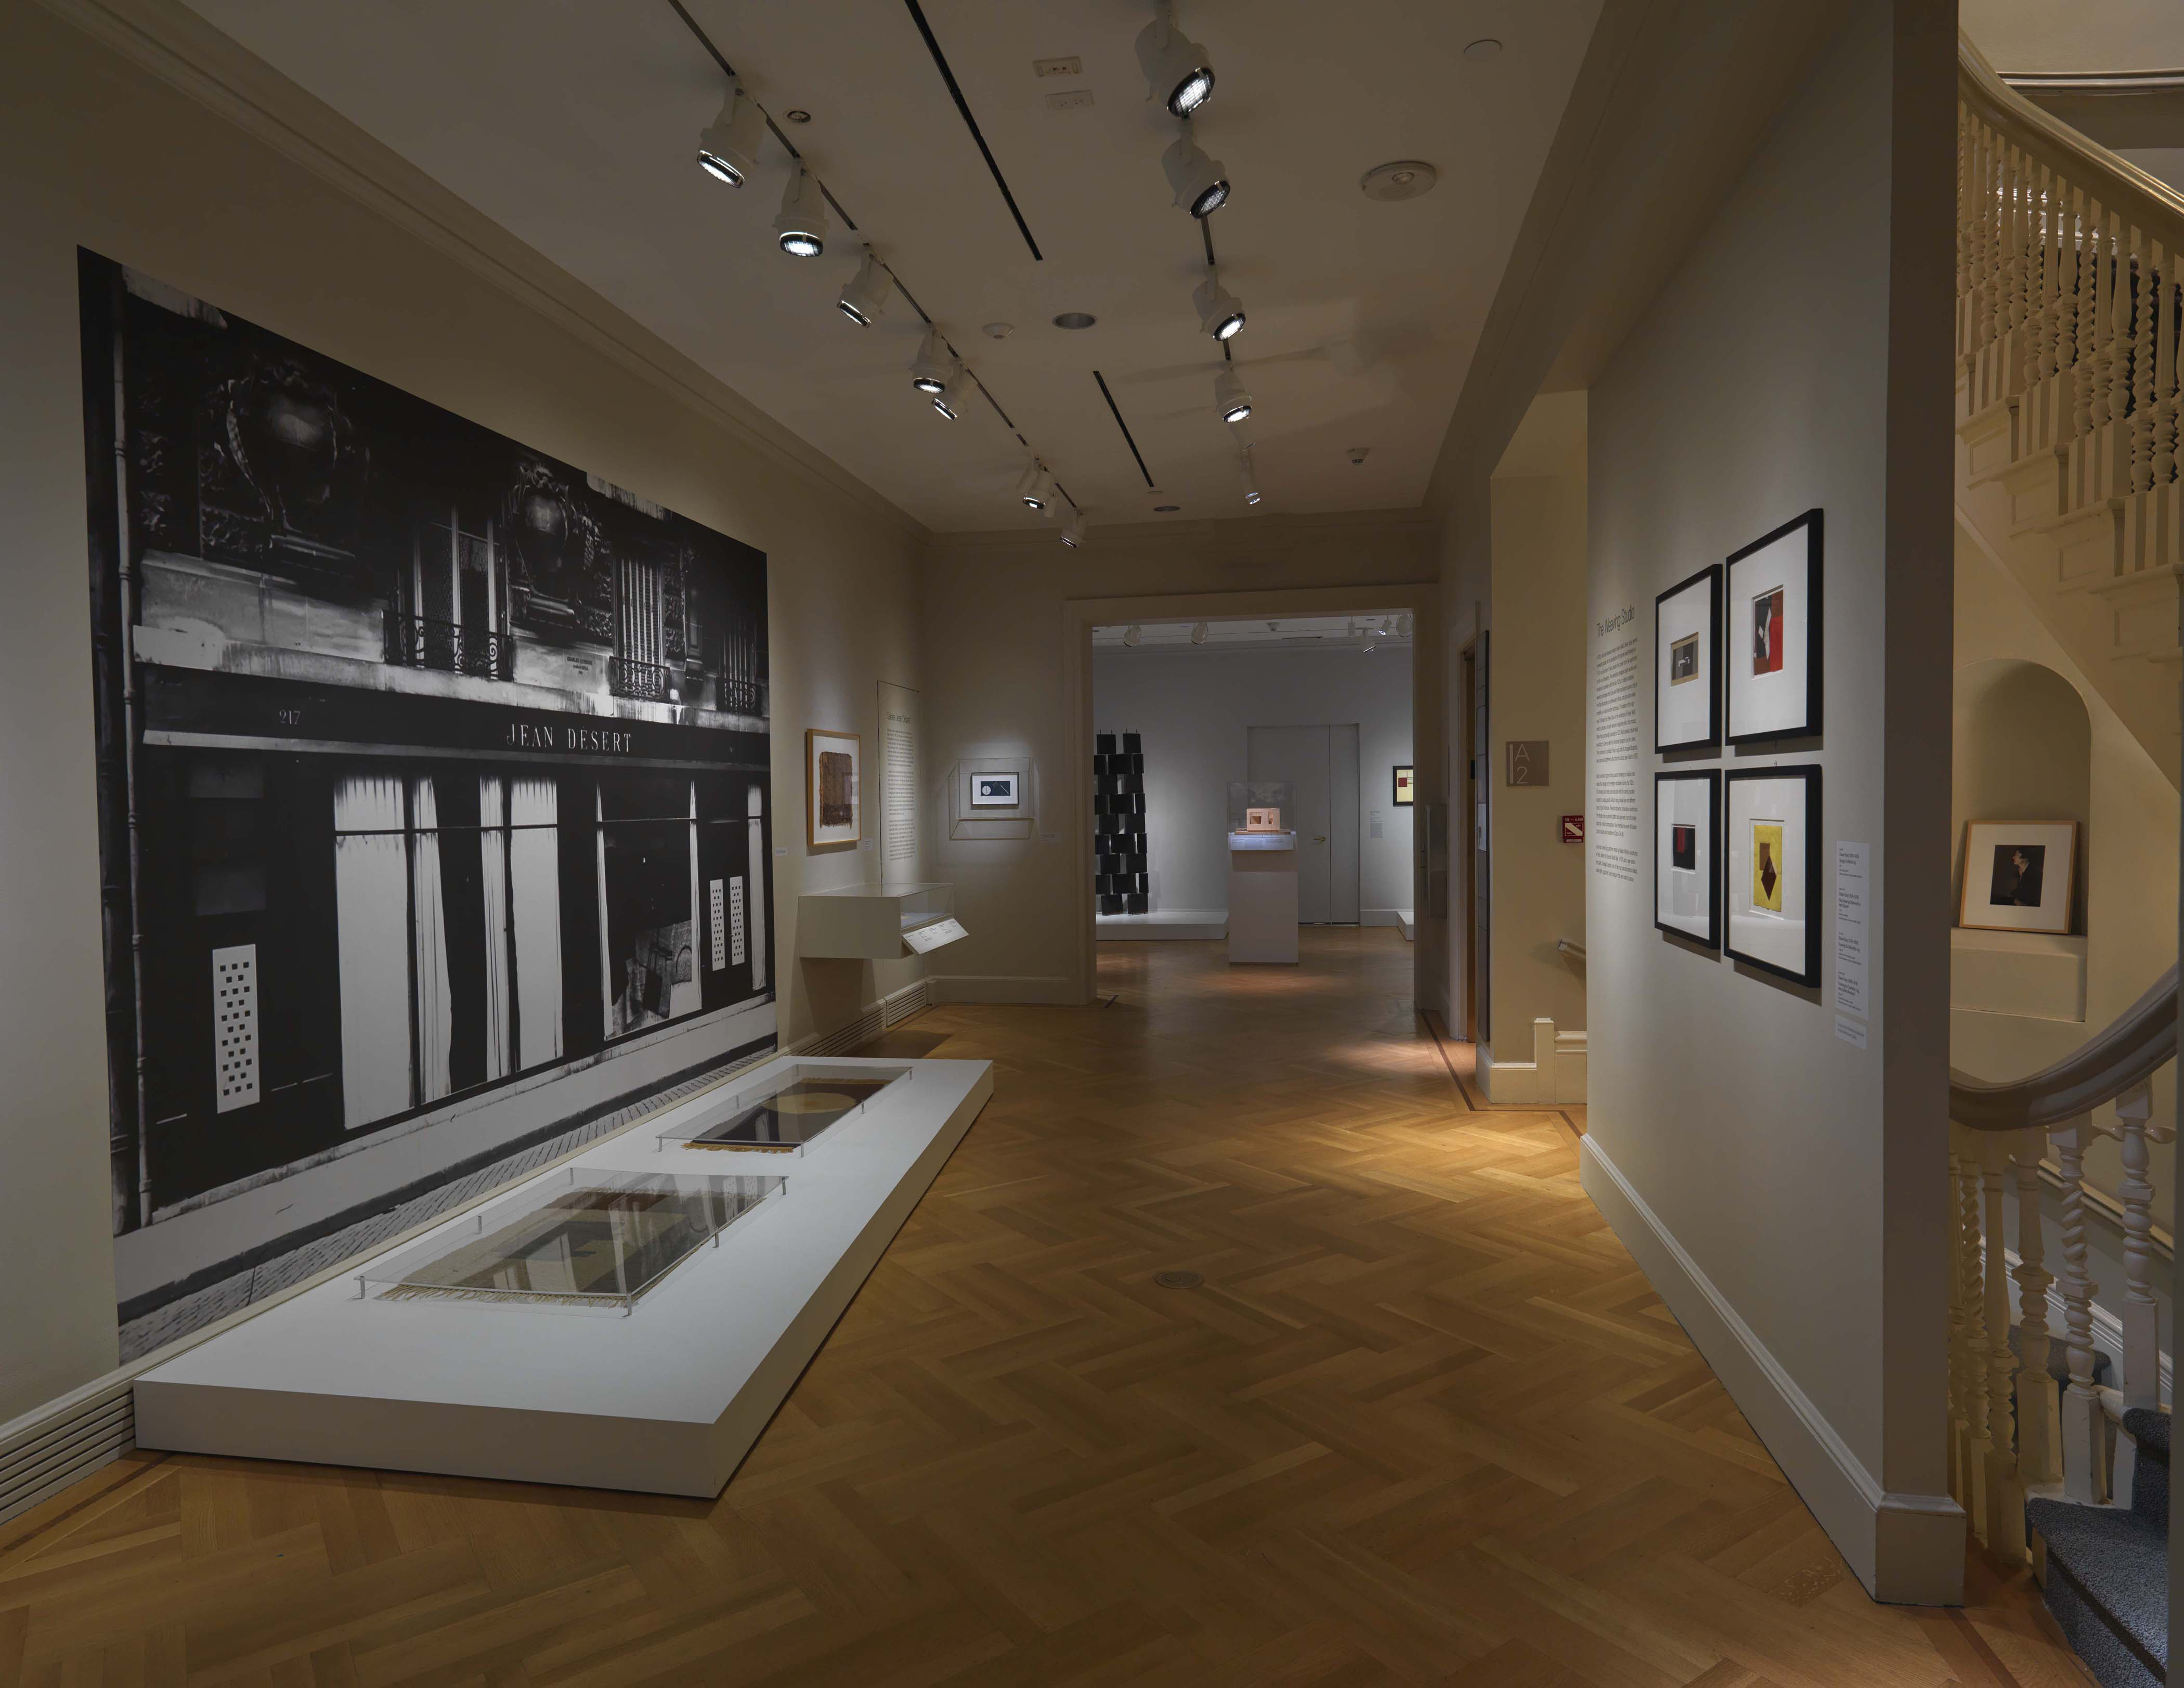 Bard Graduate Center's Eileen Gray exhibition installation with carpets, paintings, and an architectural model on display.